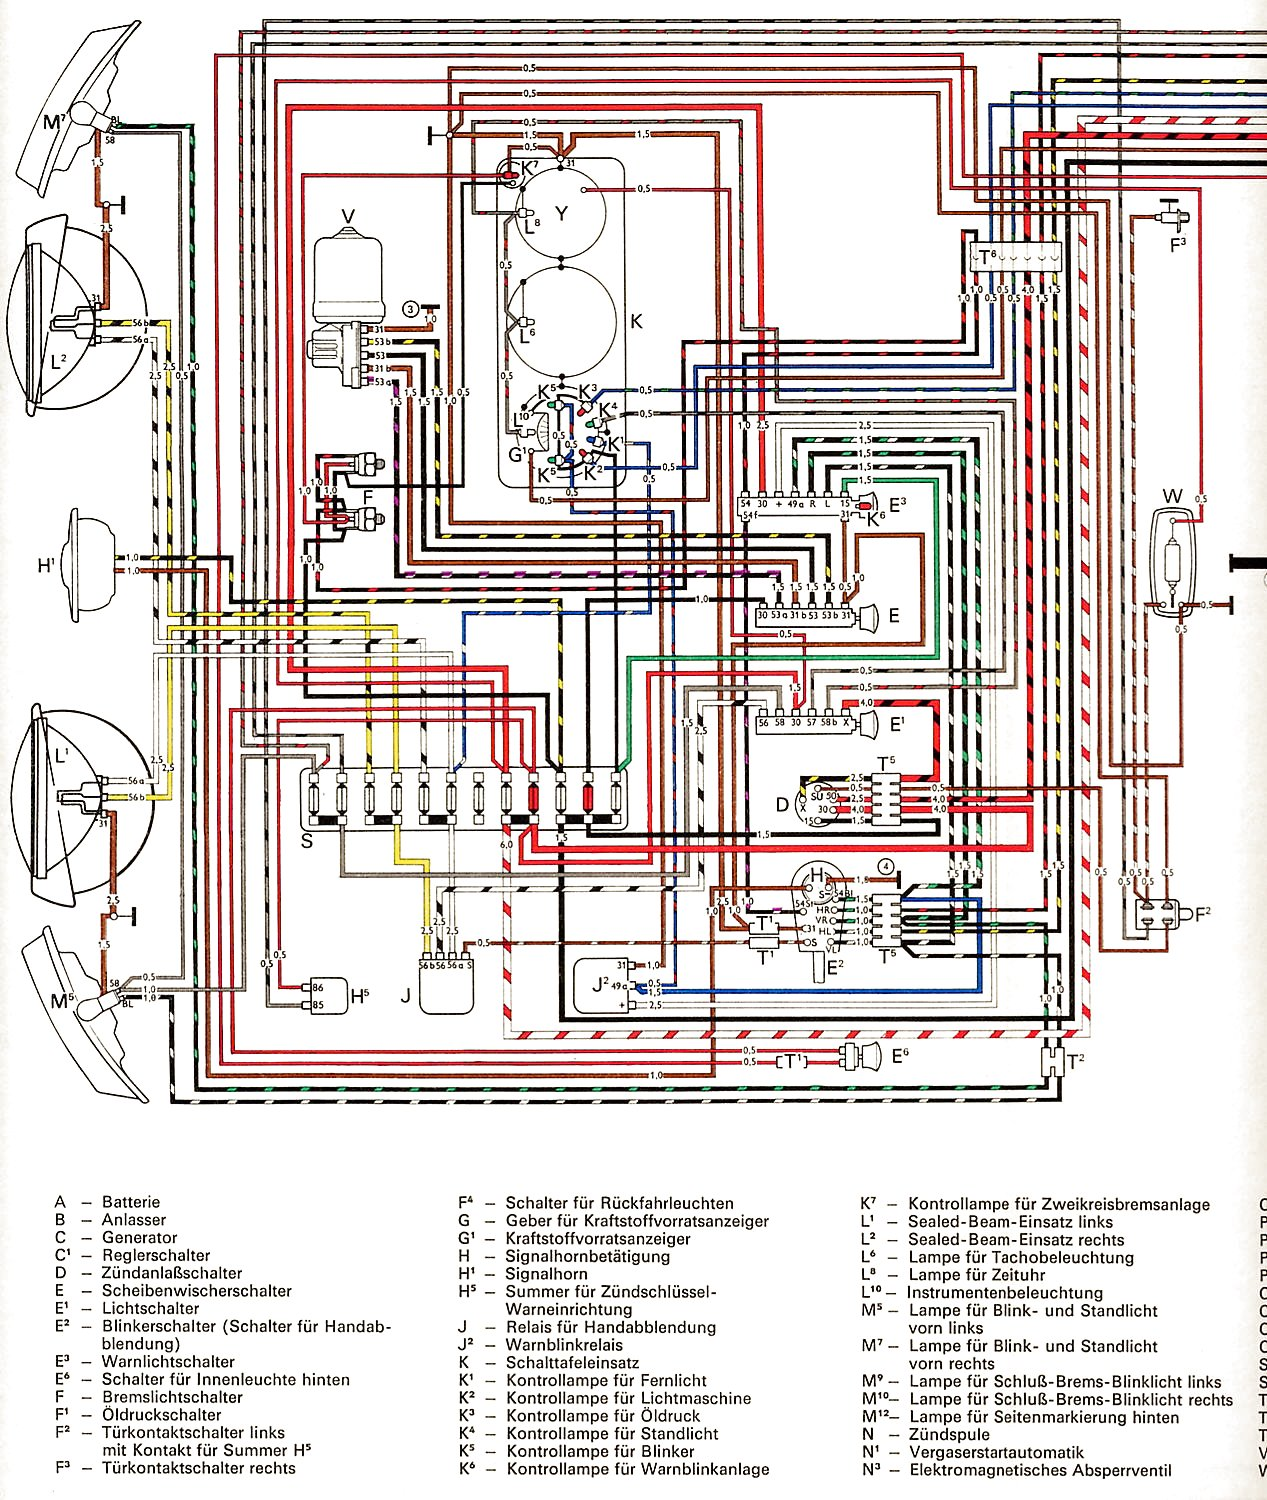 Vw Beetle Wiring Diagram 1974 - 1989 Ford F250 Fuse Box for Wiring Diagram  Schematics Wiring Diagram Schematics